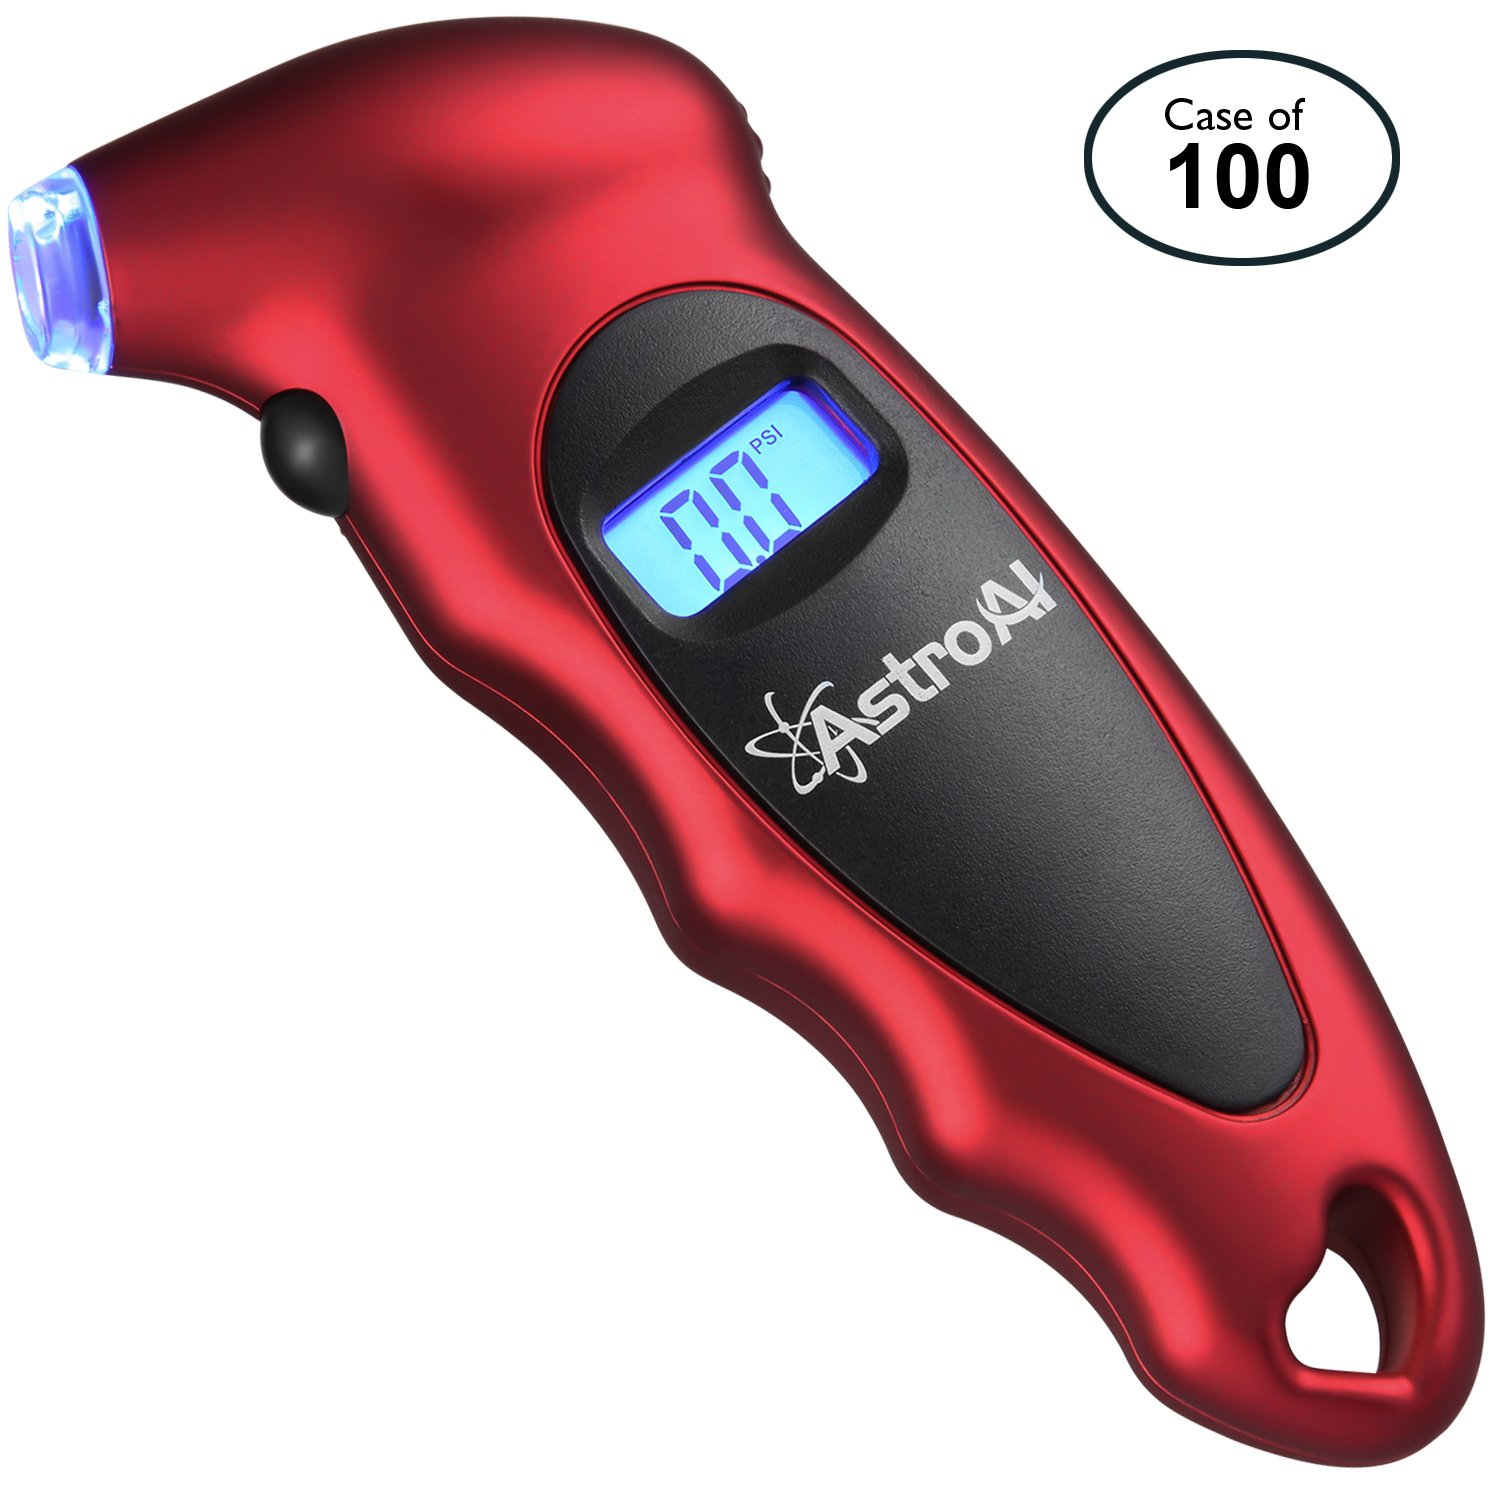 AstroAI Case of 100, Digital Tire Pressure Gauge 150 PSI 4 Settings for Car Truck Bicycle with Backlit LCD and Non-Slip Grip, Red